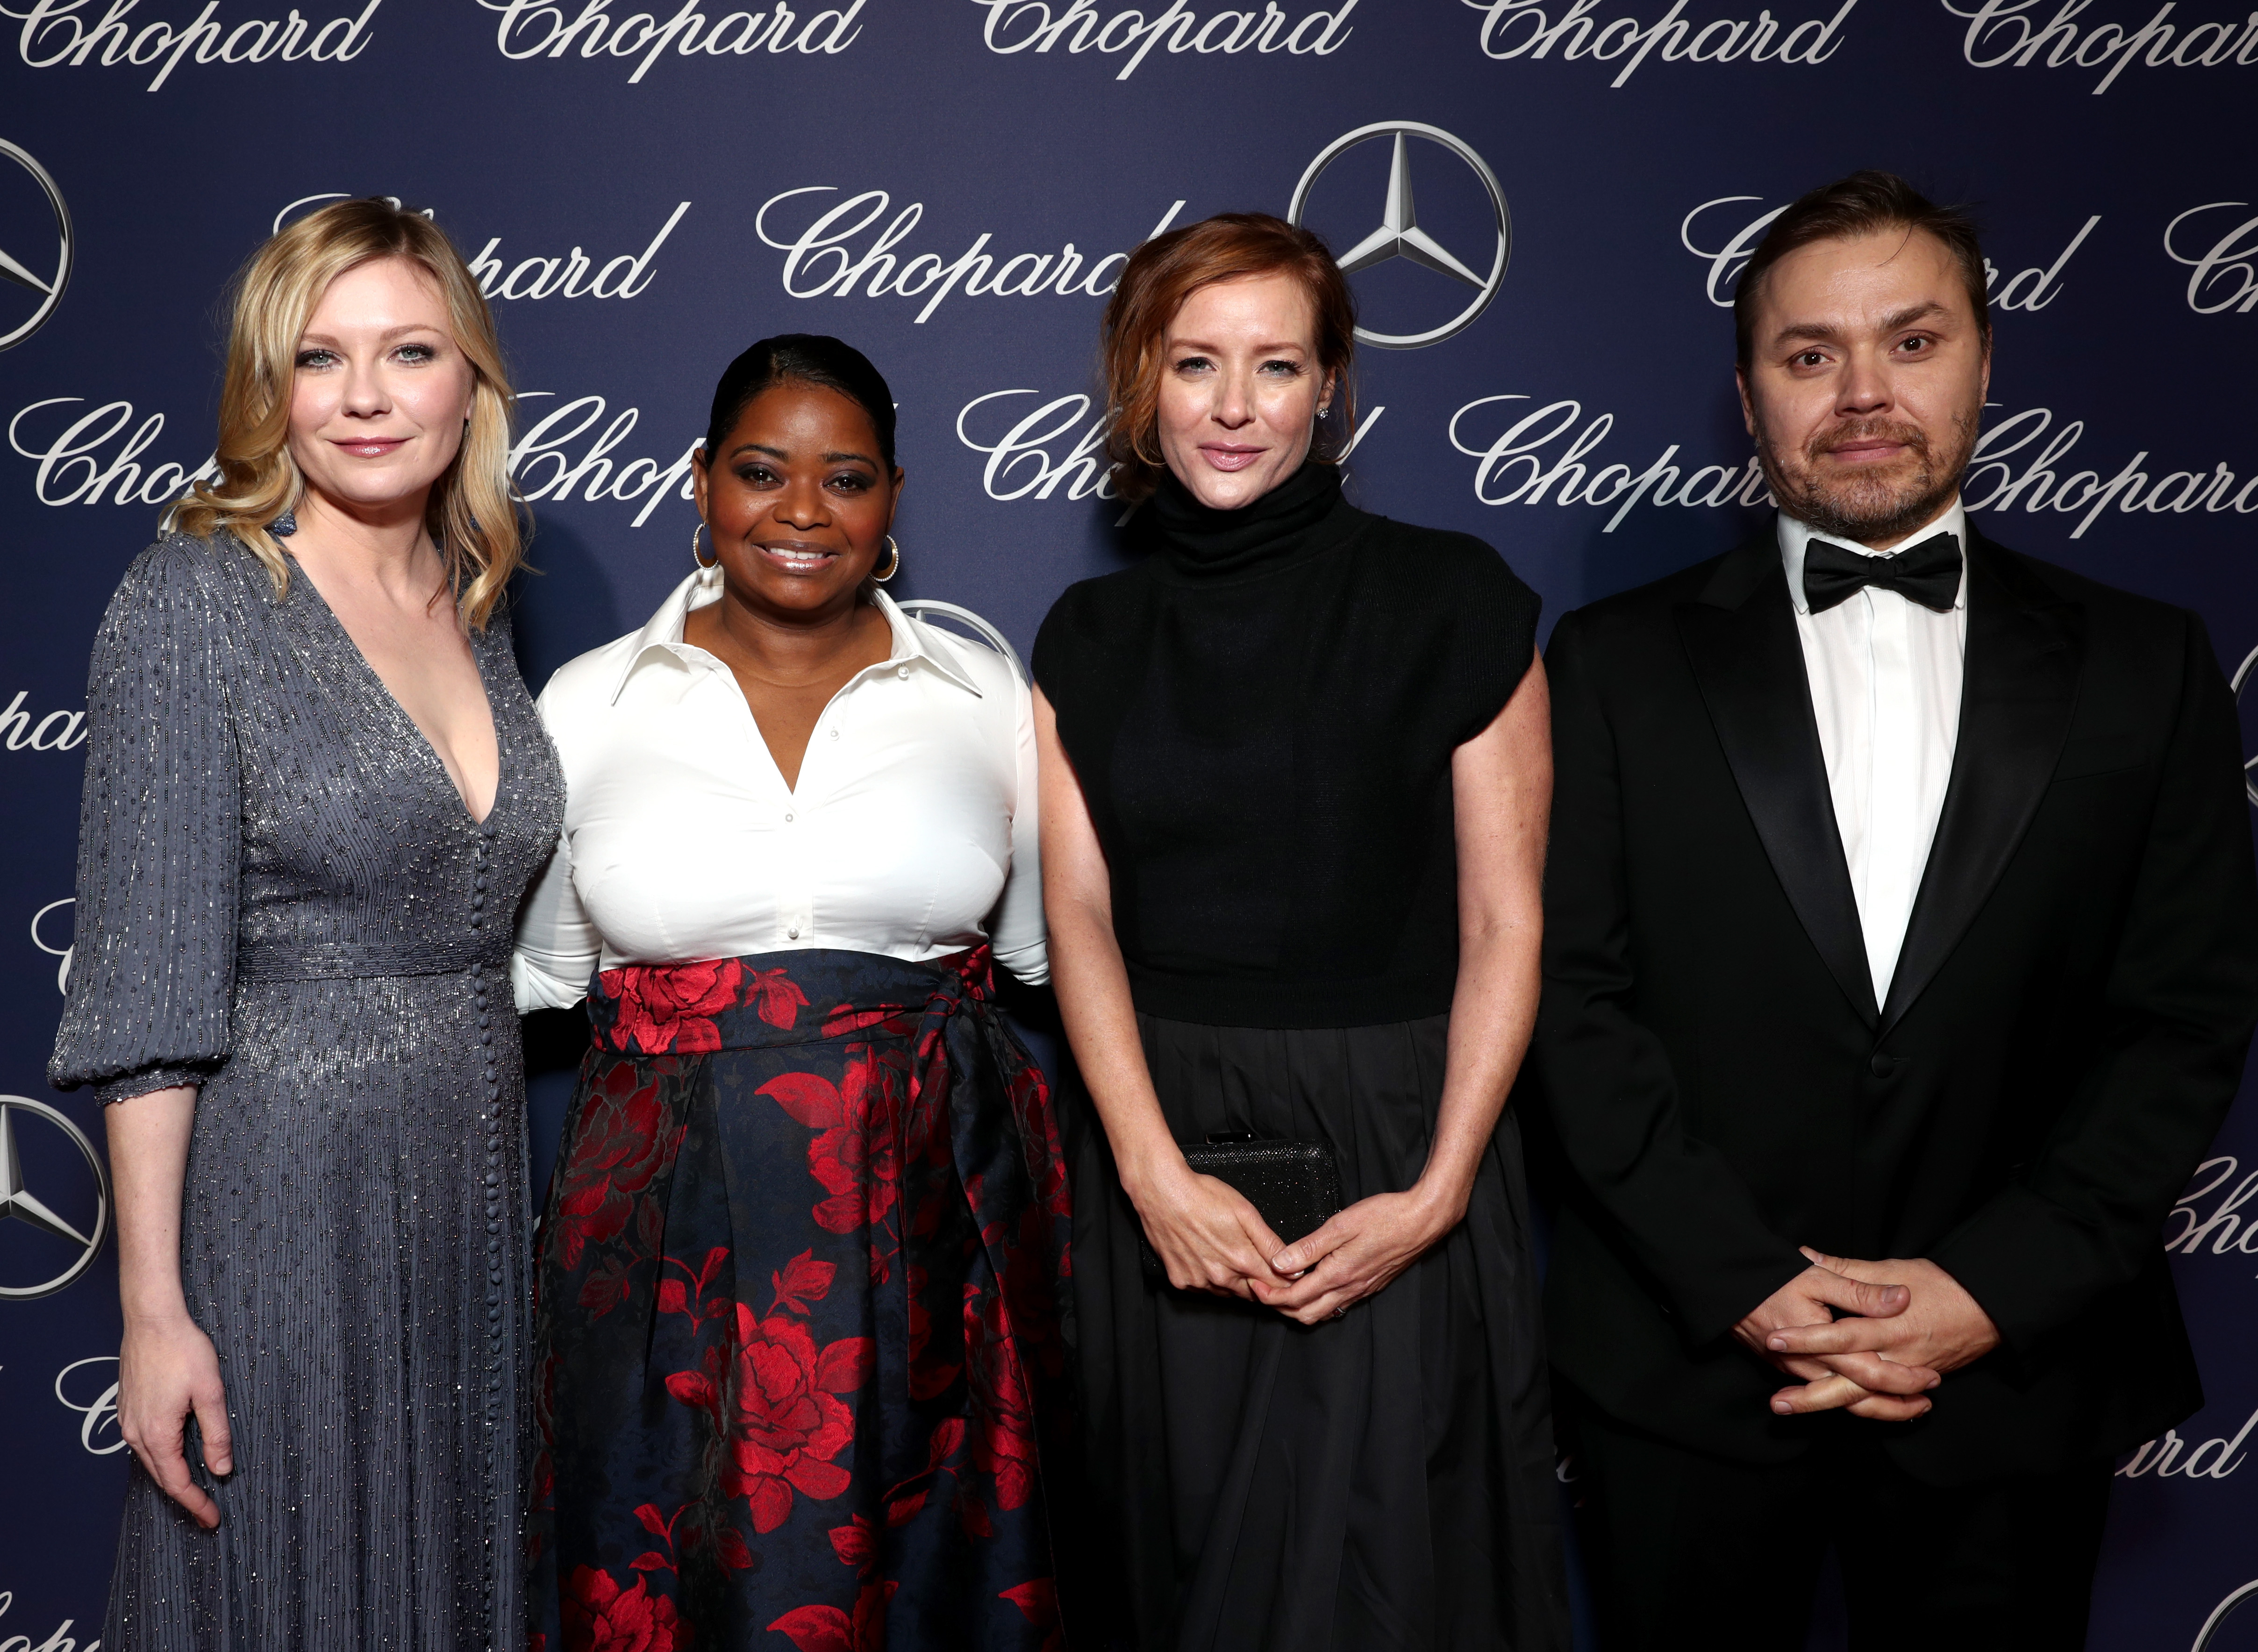 PALM SPRINGS, CA - JANUARY 02: (L-R) Actresses Kirsten Dunst, Octavia Spencer, Kimberly Quinn and director Theodore Melfi attend the 28th Annual Palm Springs International Film Festival Film Awards Gala at the Palm Springs Convention Center on January 2, 2017 in Palm Springs, California. (Photo by Todd Williamson/Getty Images for Palm Springs International Film Festival)